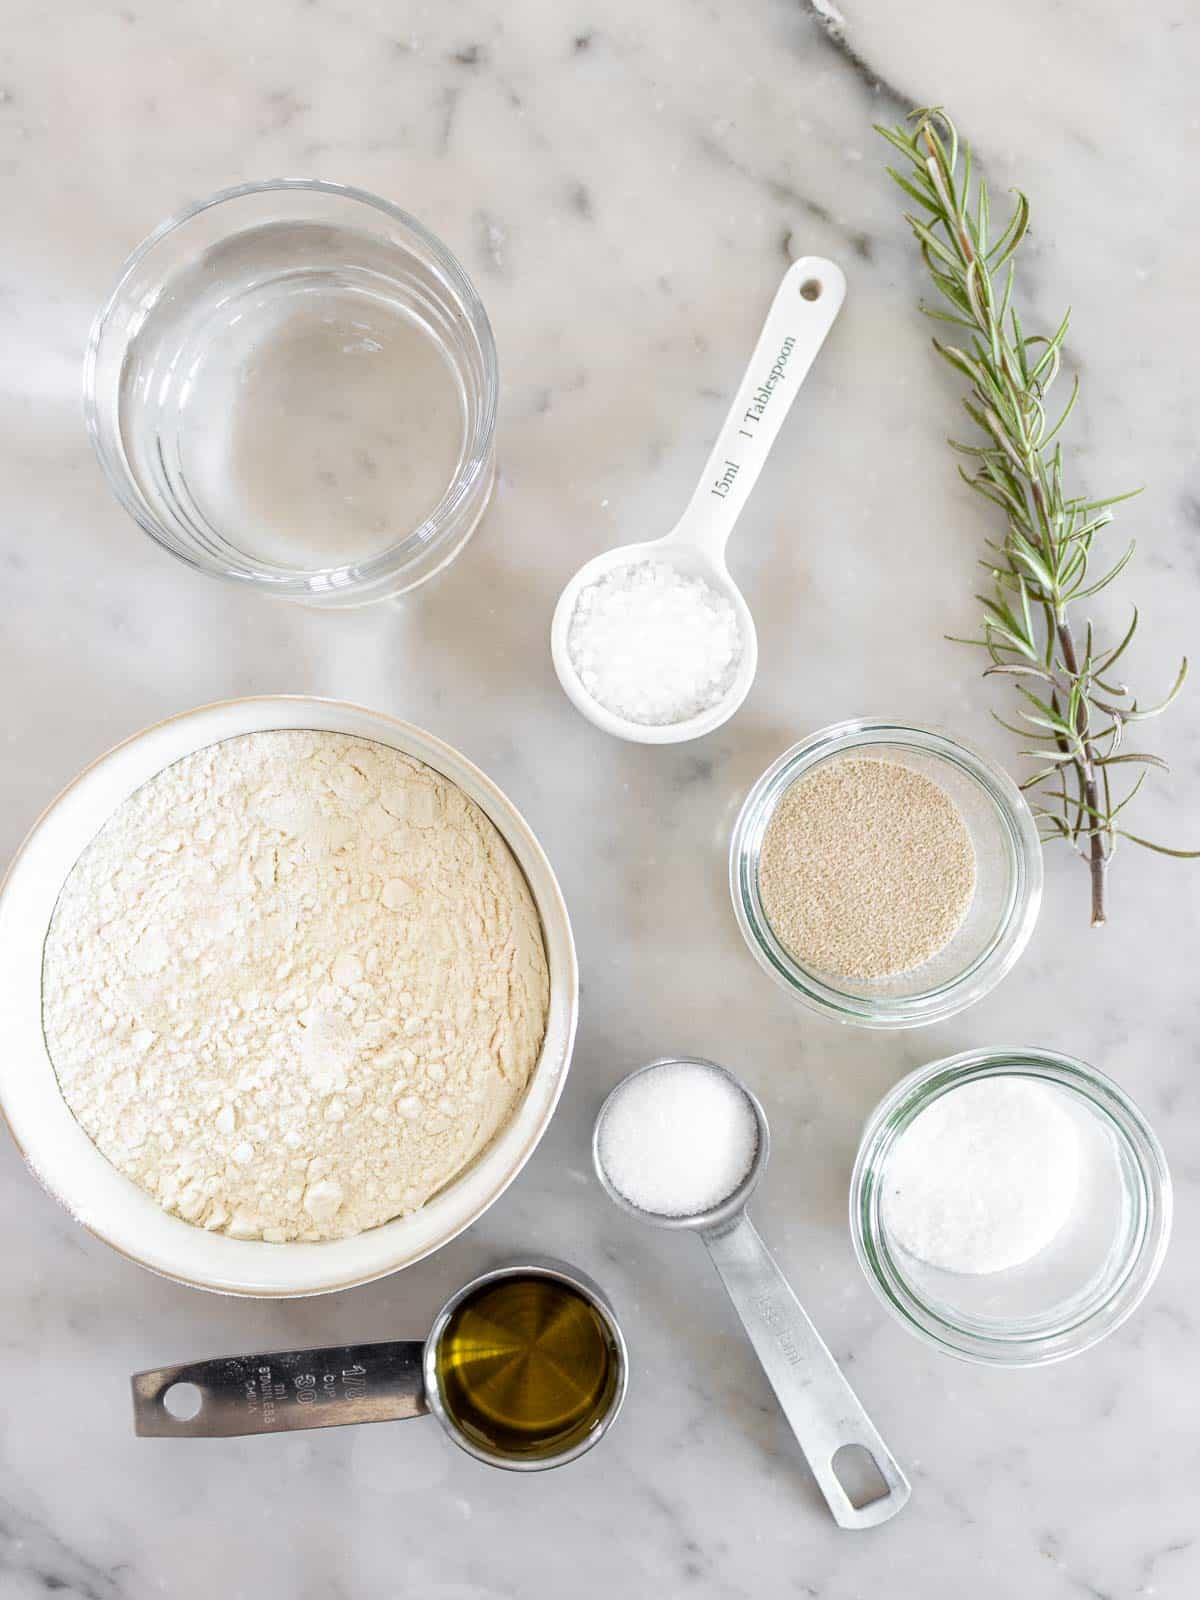 ingredients for the focaccia no knead with rosemary